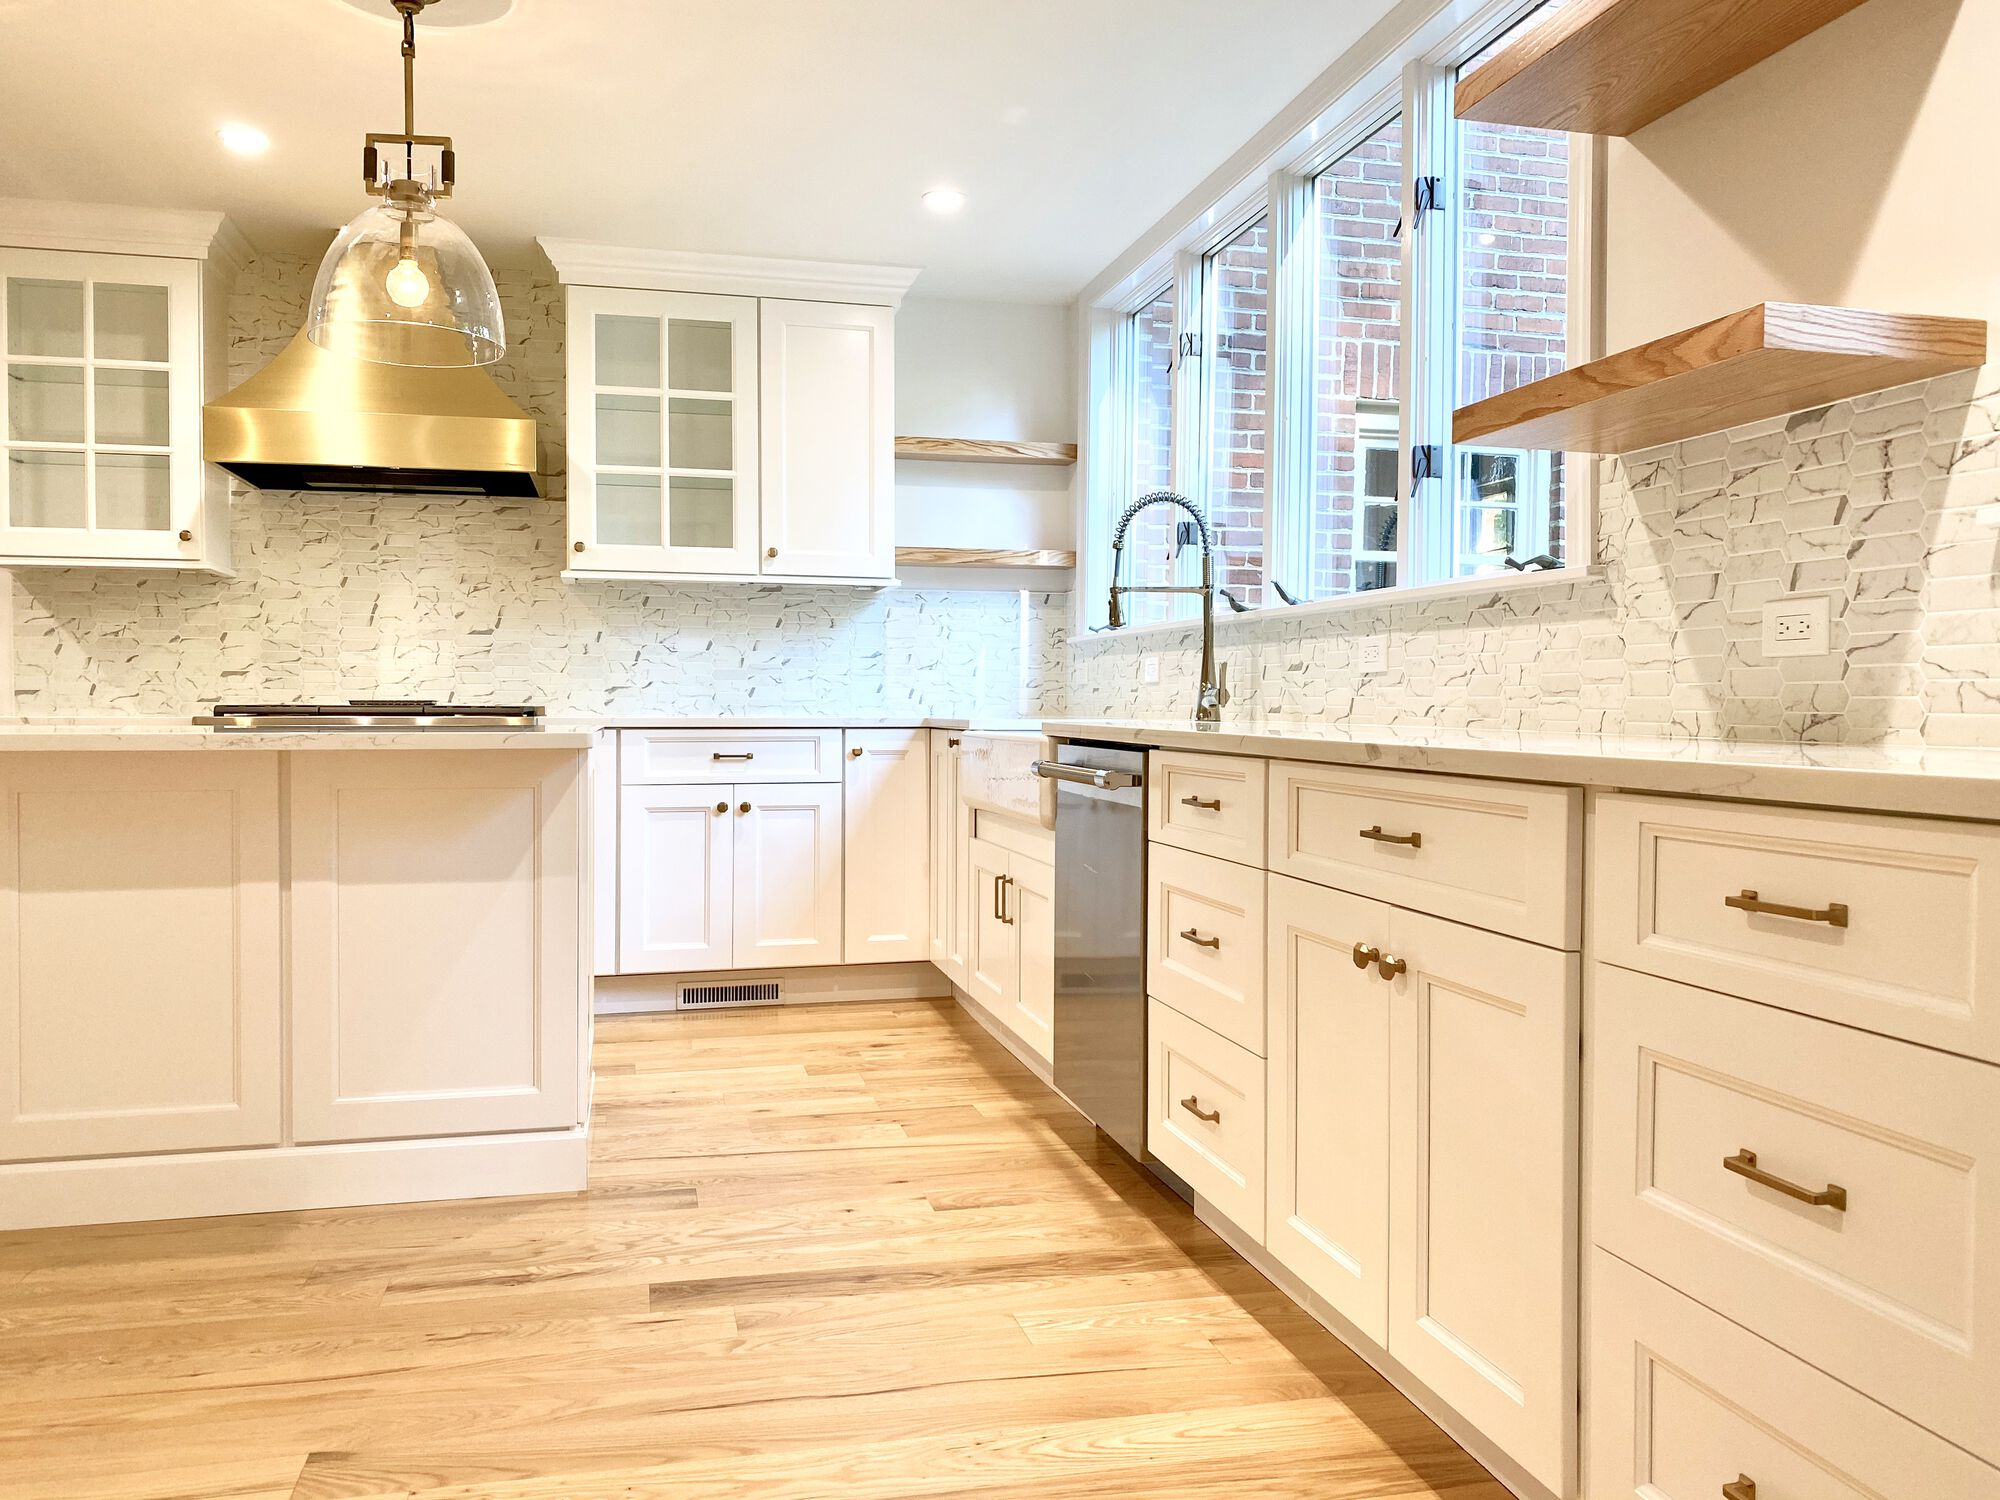 New Kitchen in Essex County NJ with Open Shelving, White Shaker Cabinets, Oak Flooring